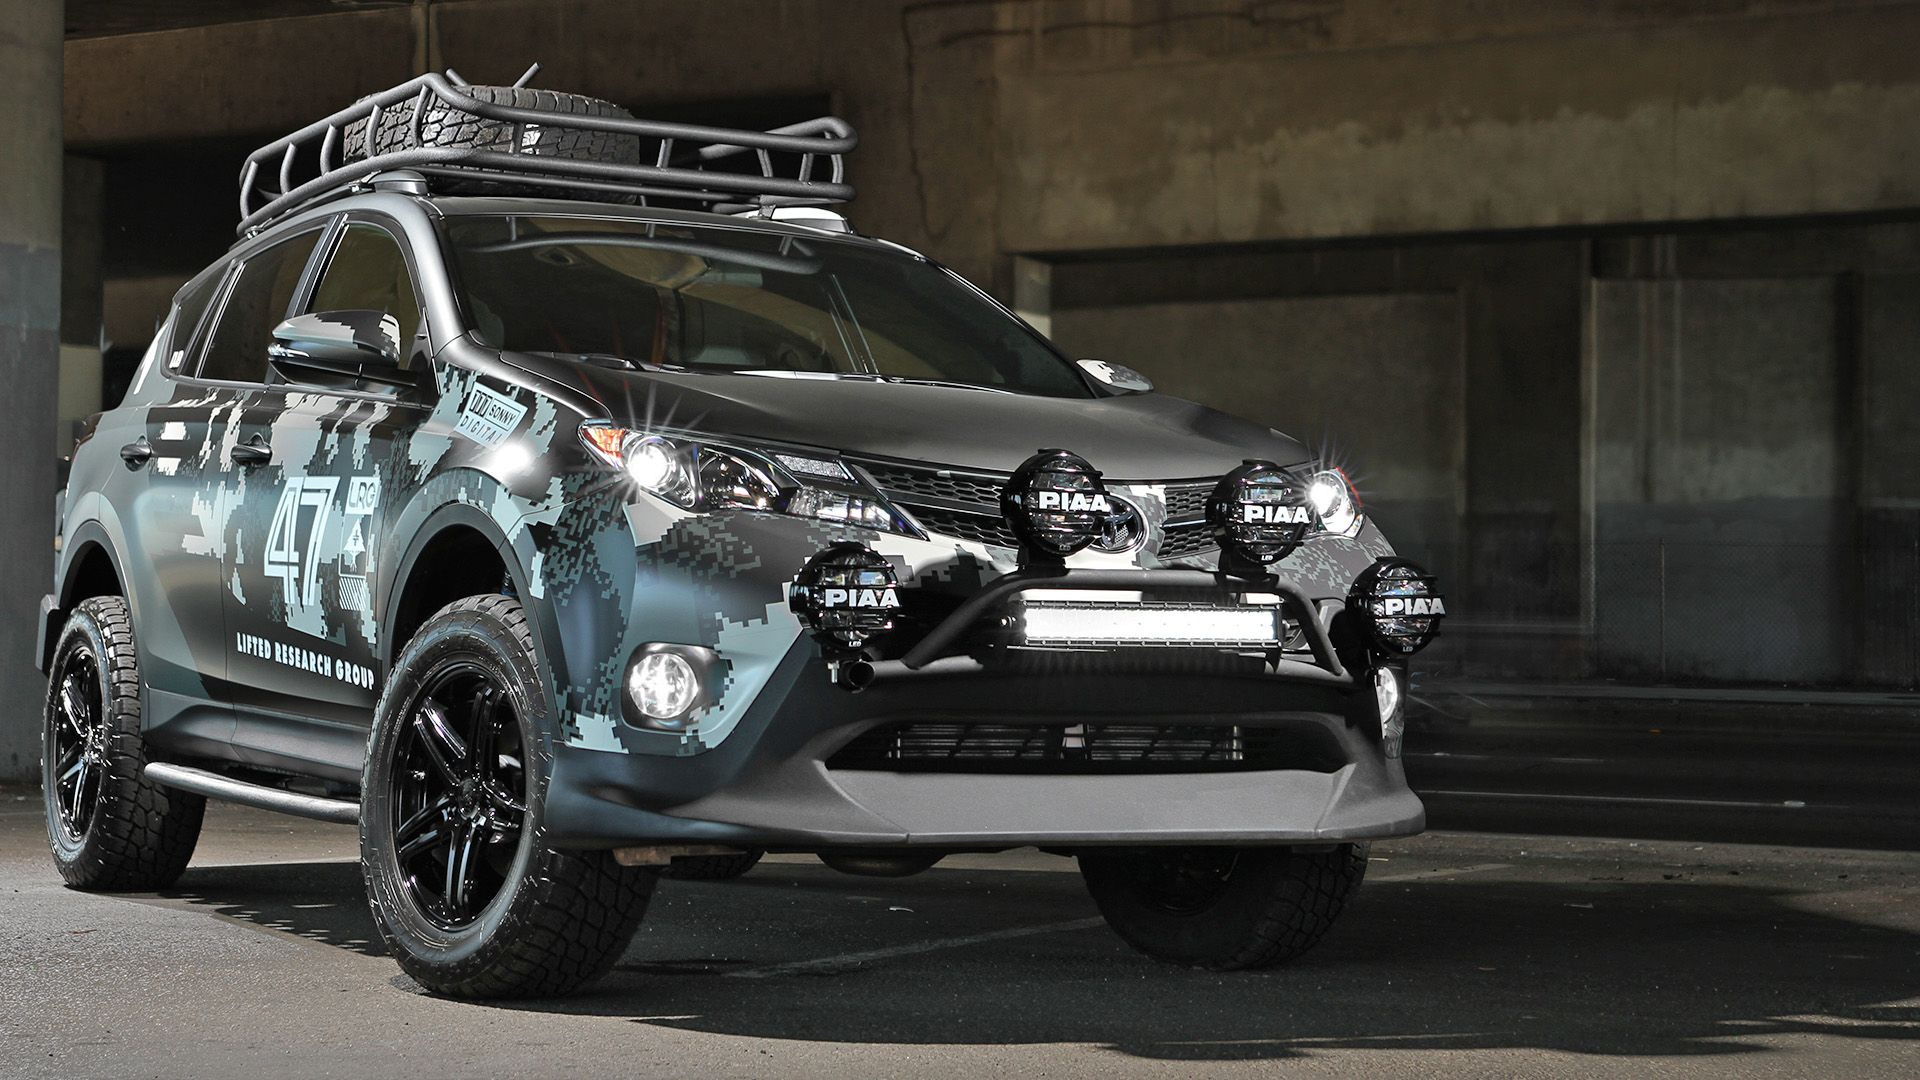 The Dub Edition Lrg Rav4 Was Revealed In Atlanta At The